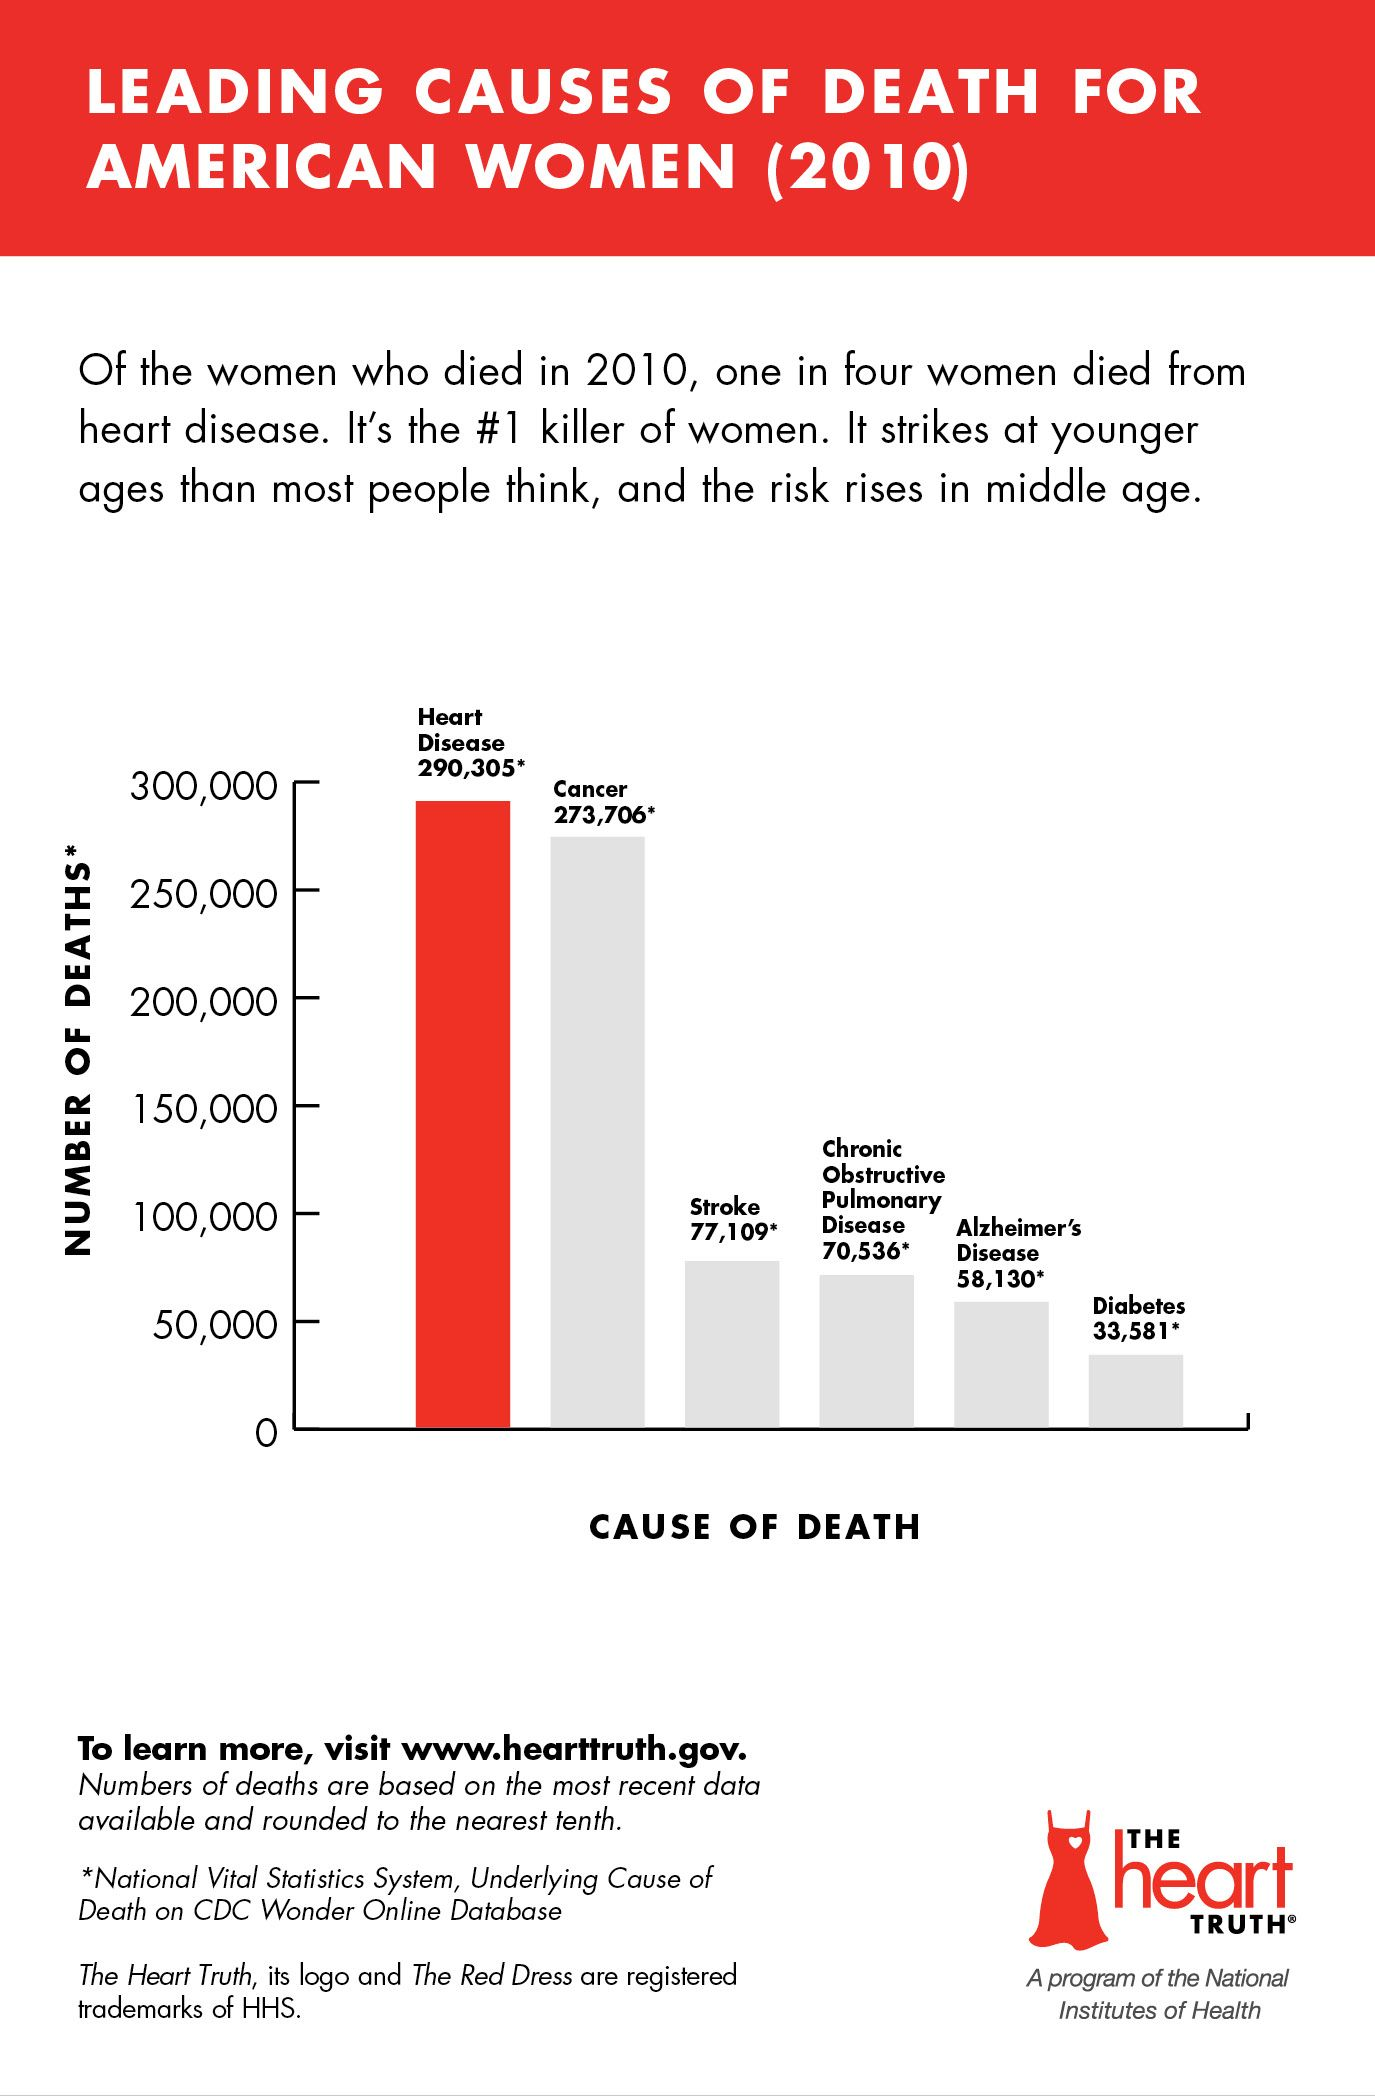 Please repin Here is the HeartTruth 1 in 4 women in the